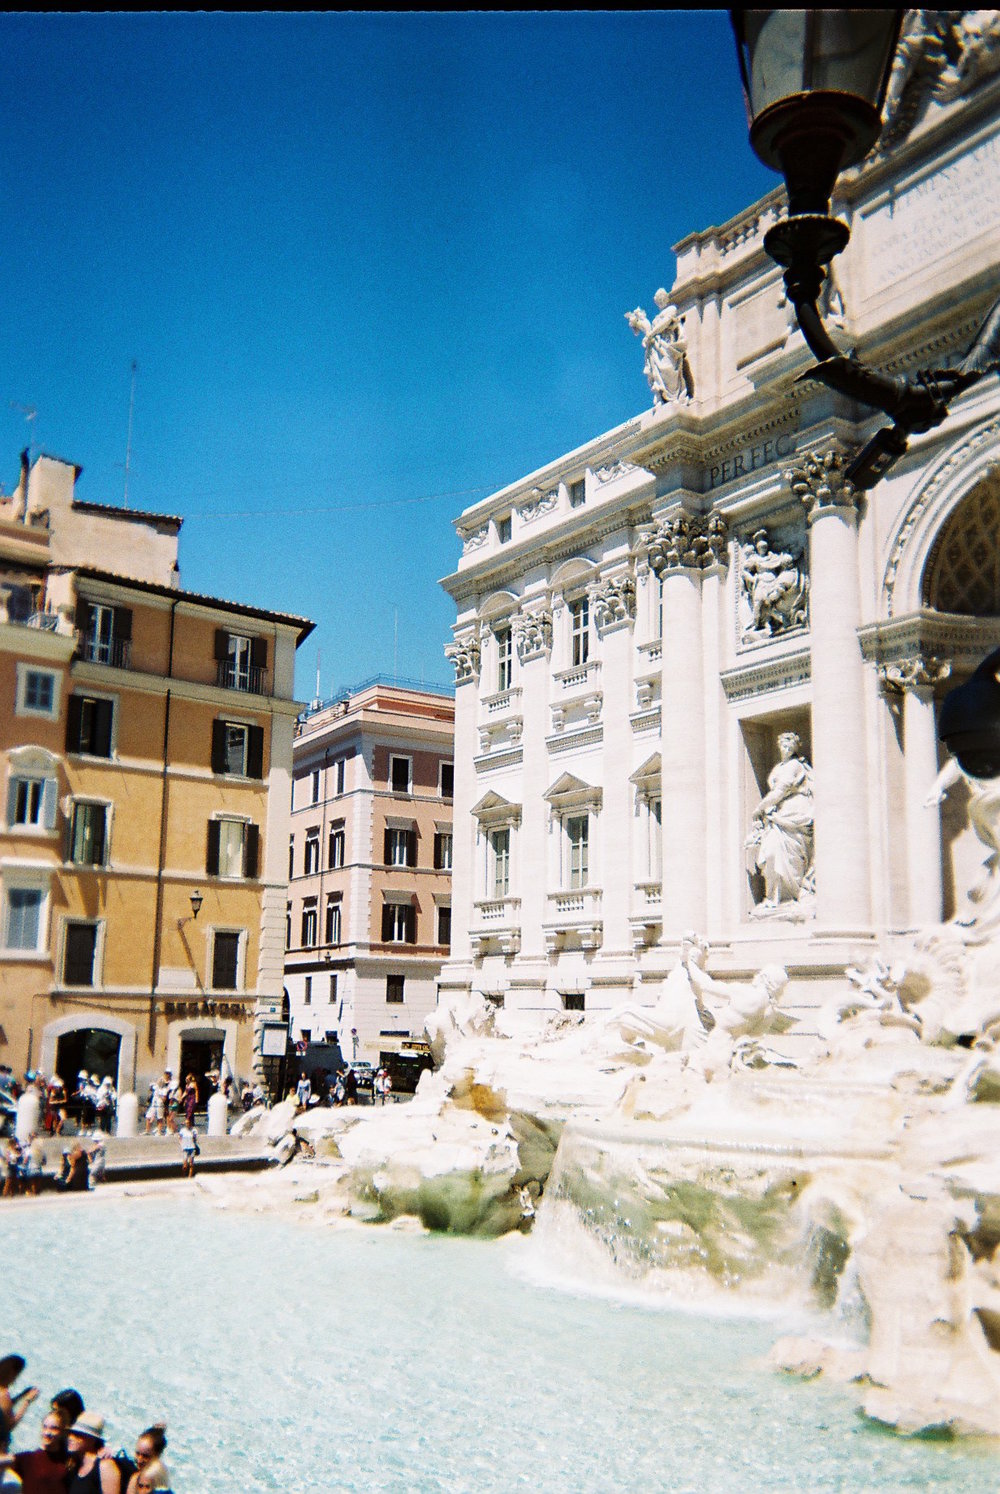 Dodgy disposable shot of the Trevi Fountain